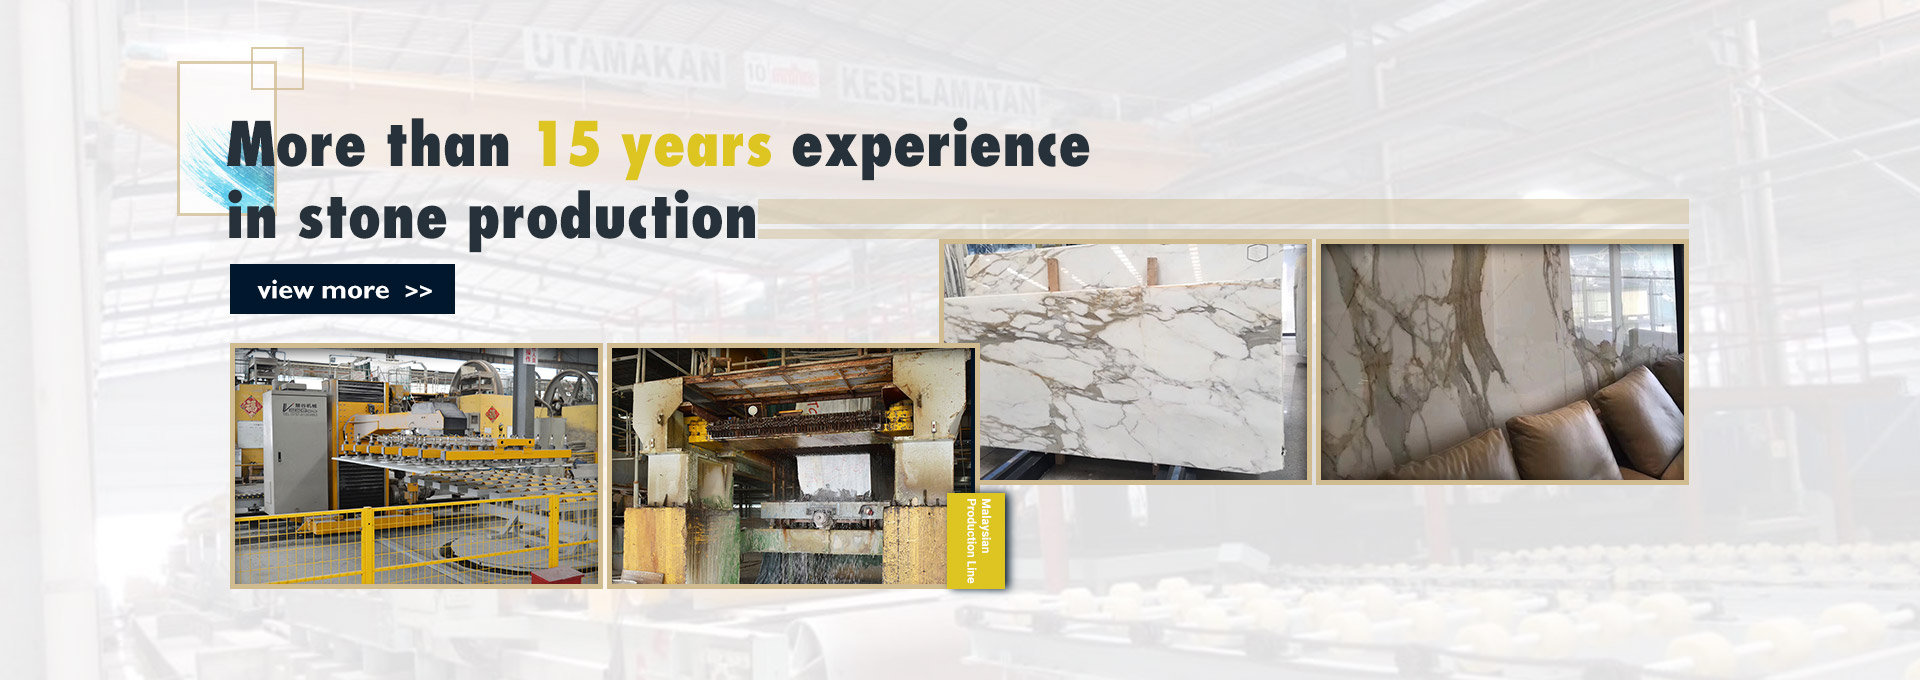 More than 15 years experience  in stone production